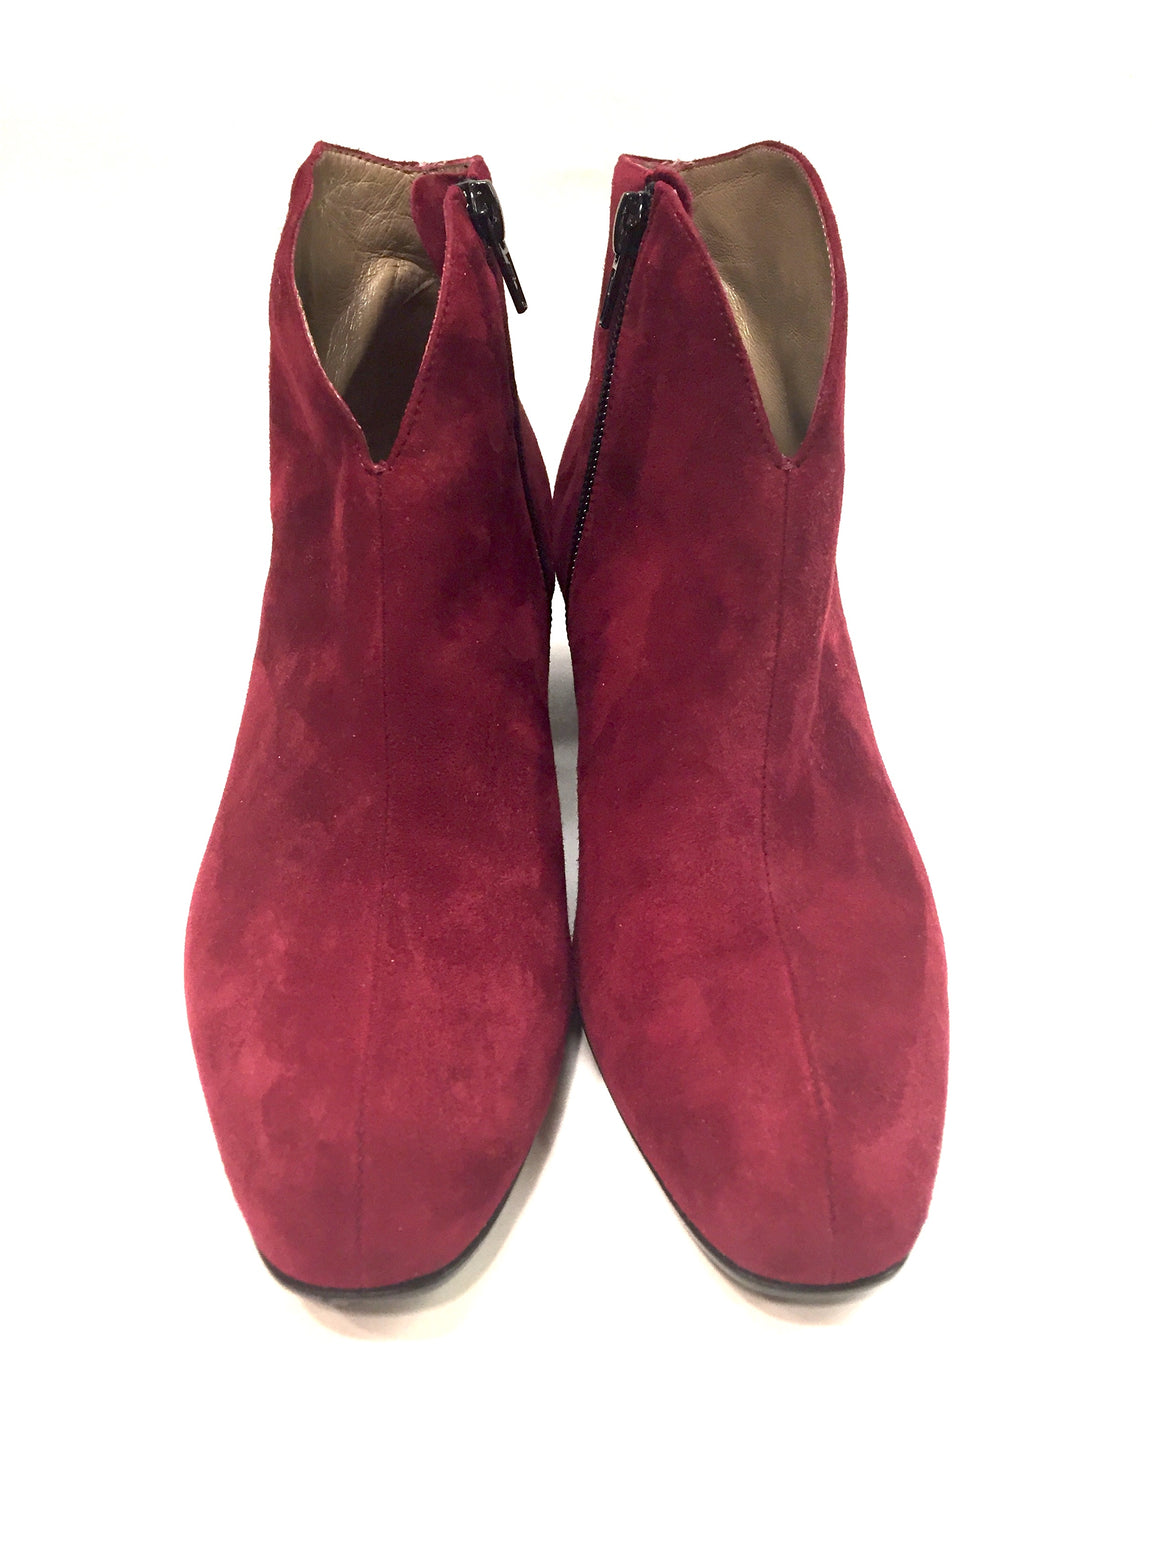 FRENCH SOLE/NY FS/NY Cherry Red Suede Block heel Ankle Boots Chelsea Boots Booties Sz36.5